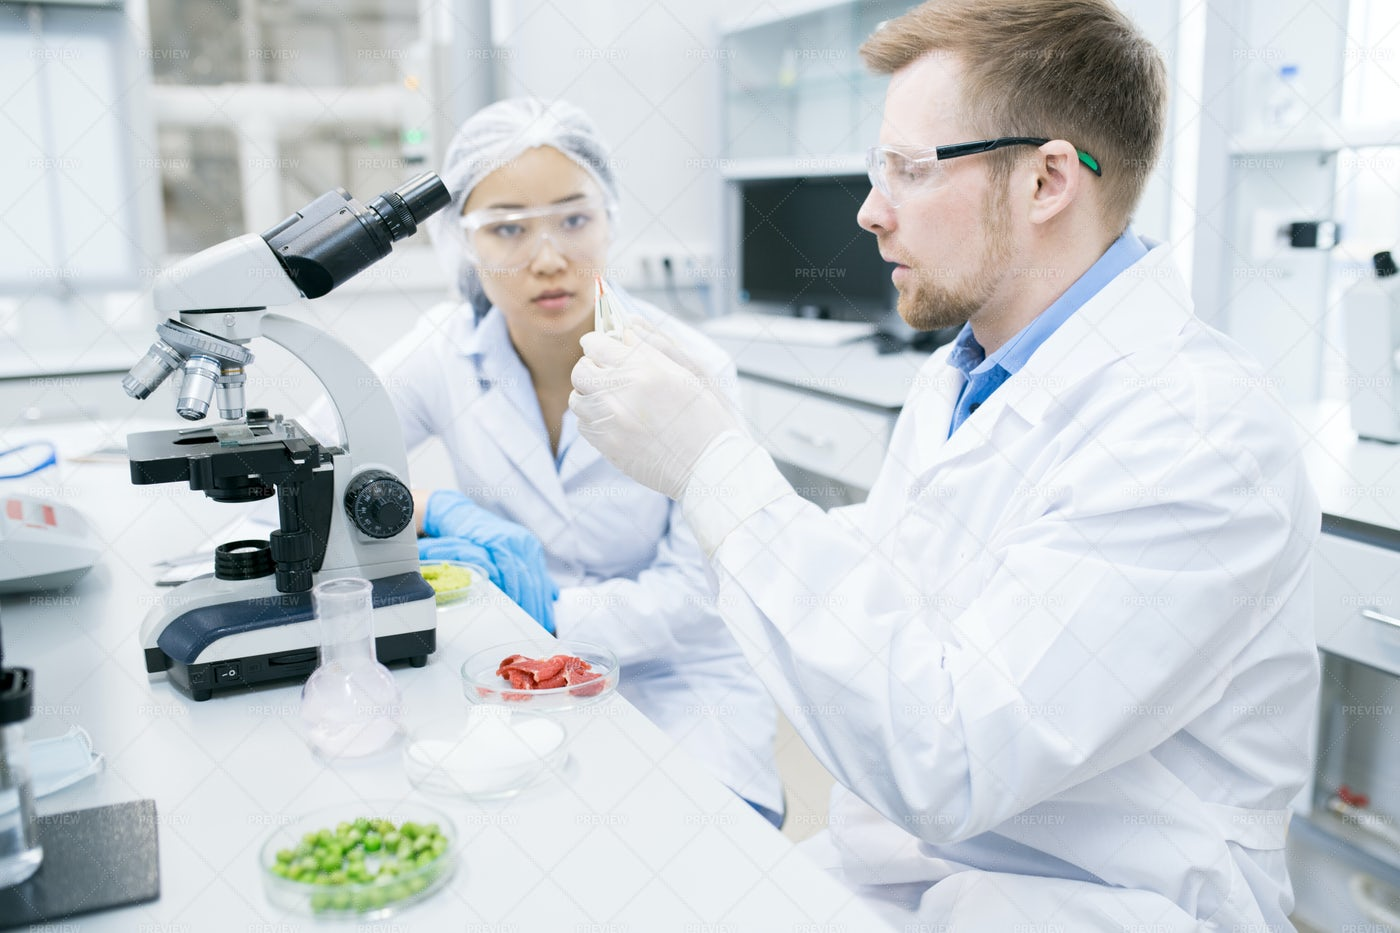 Woman Scientist Looking At...: Stock Photos